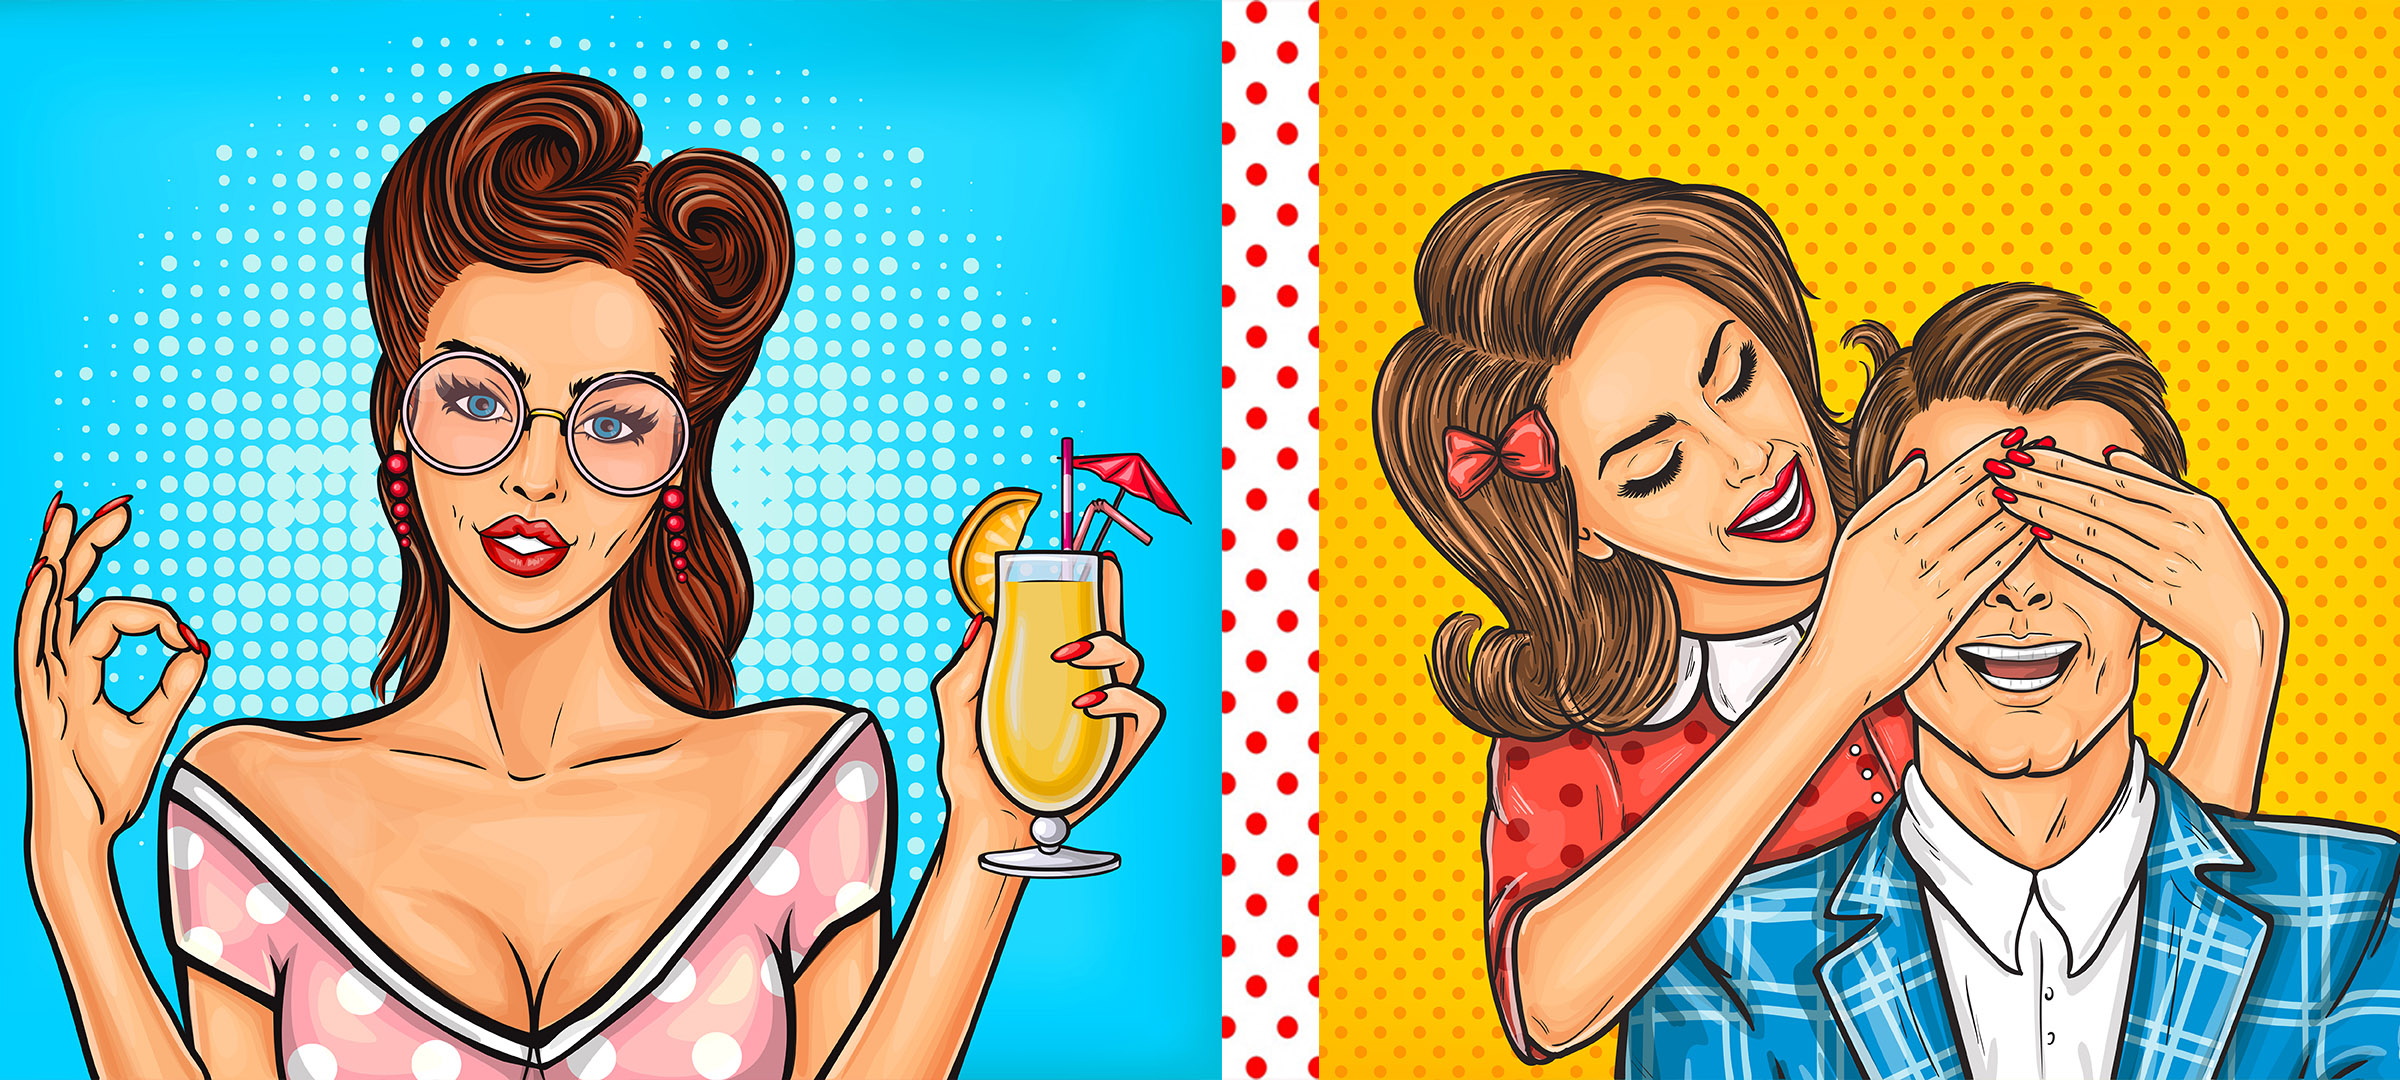 Left image Girl with Cocktail on blue Right image Woman with hands covering man's eyes